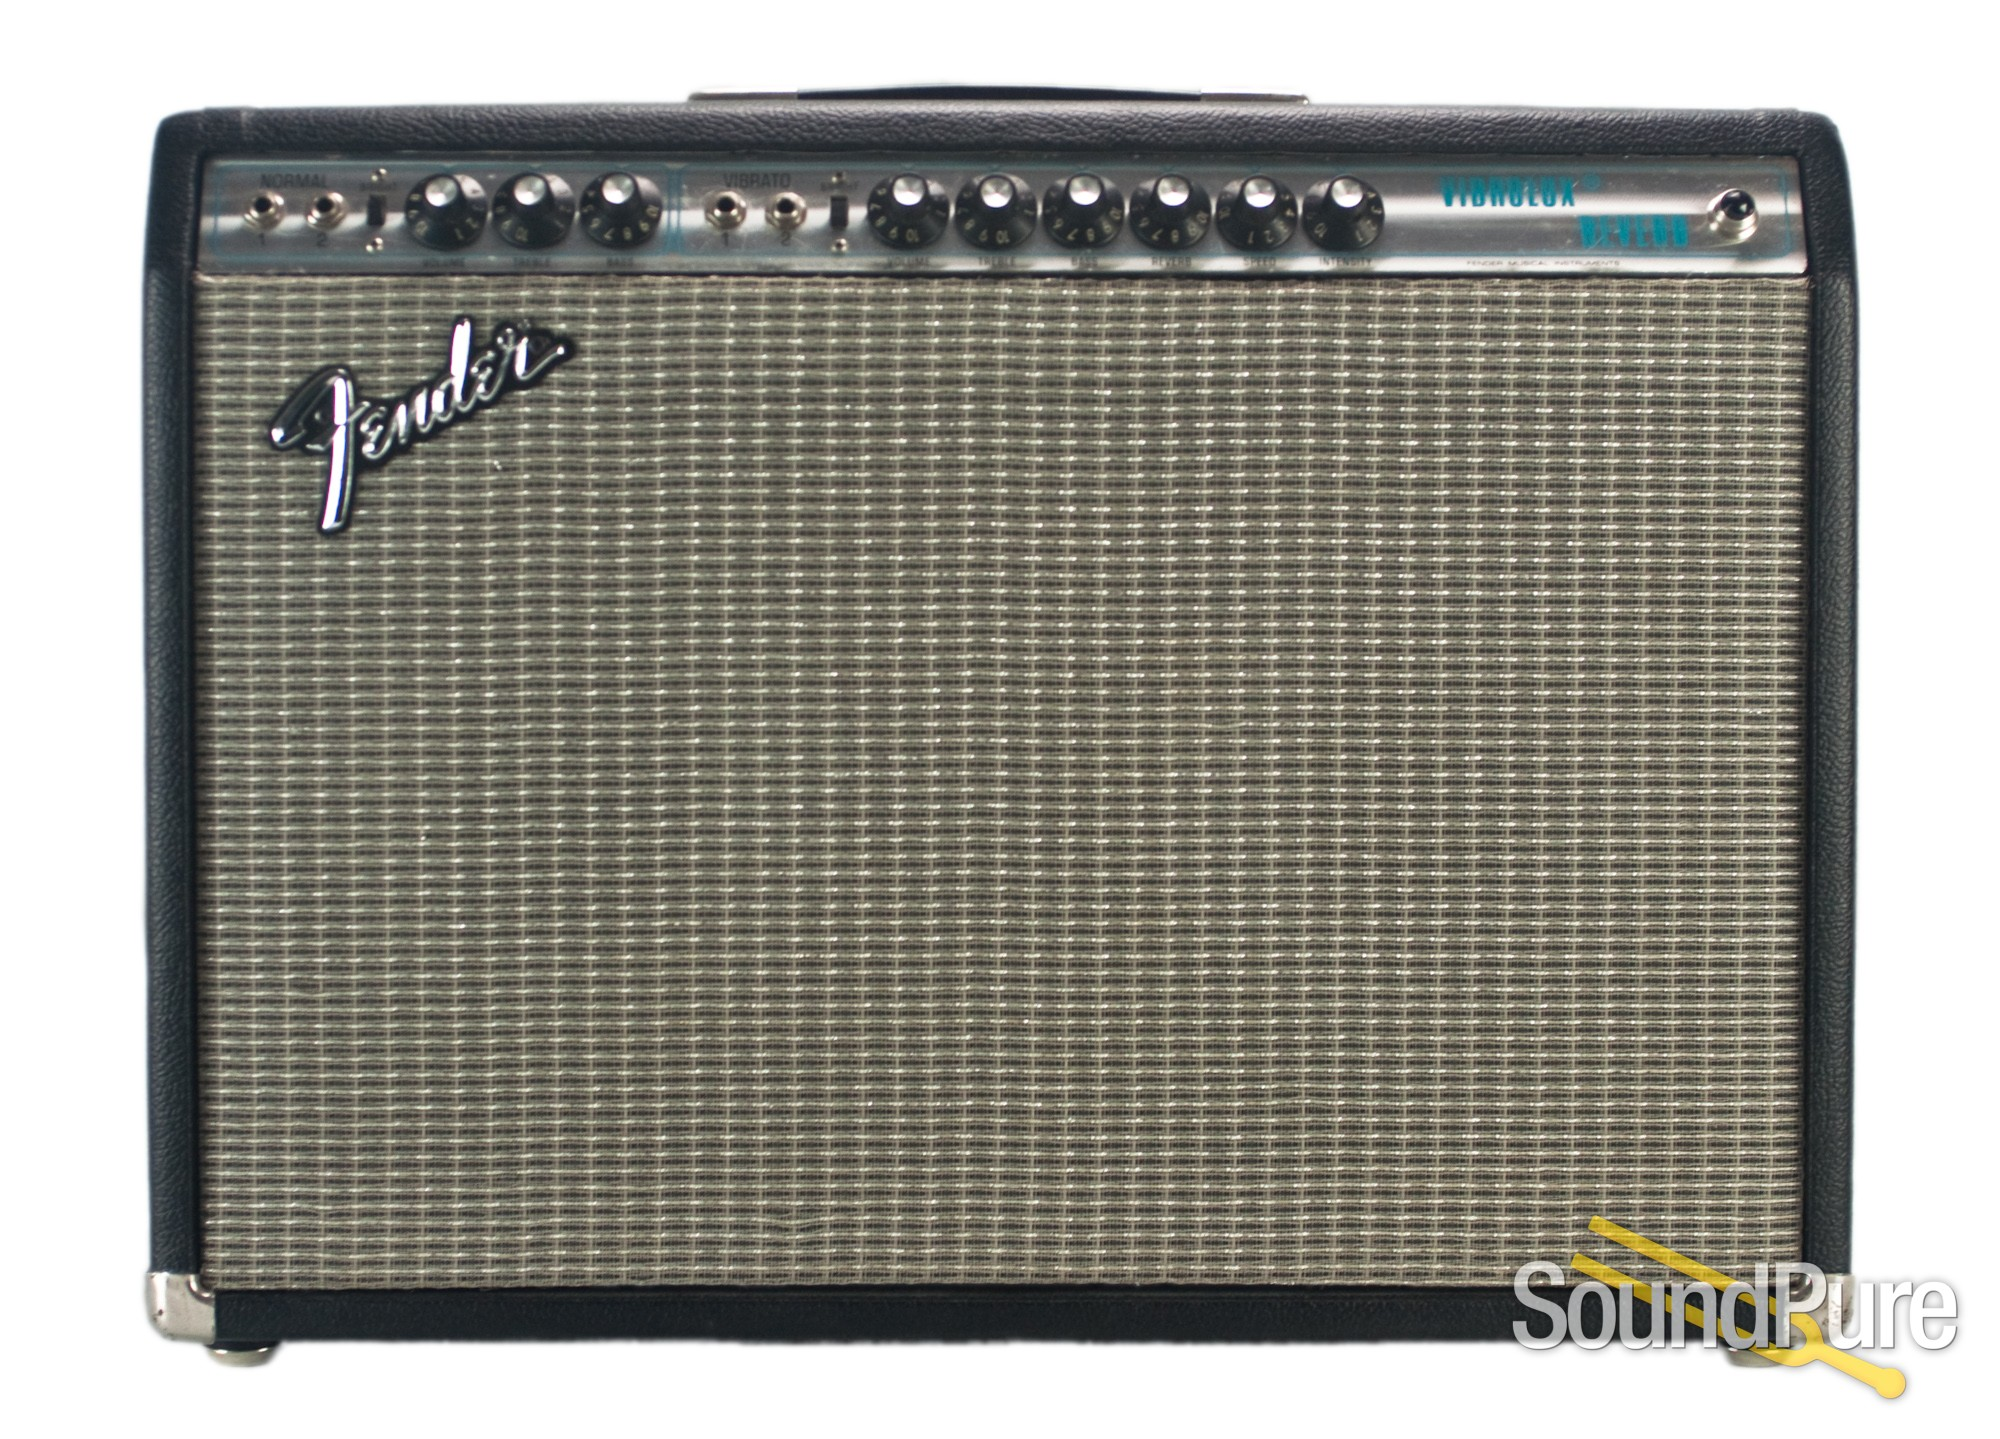 dating a fender amp